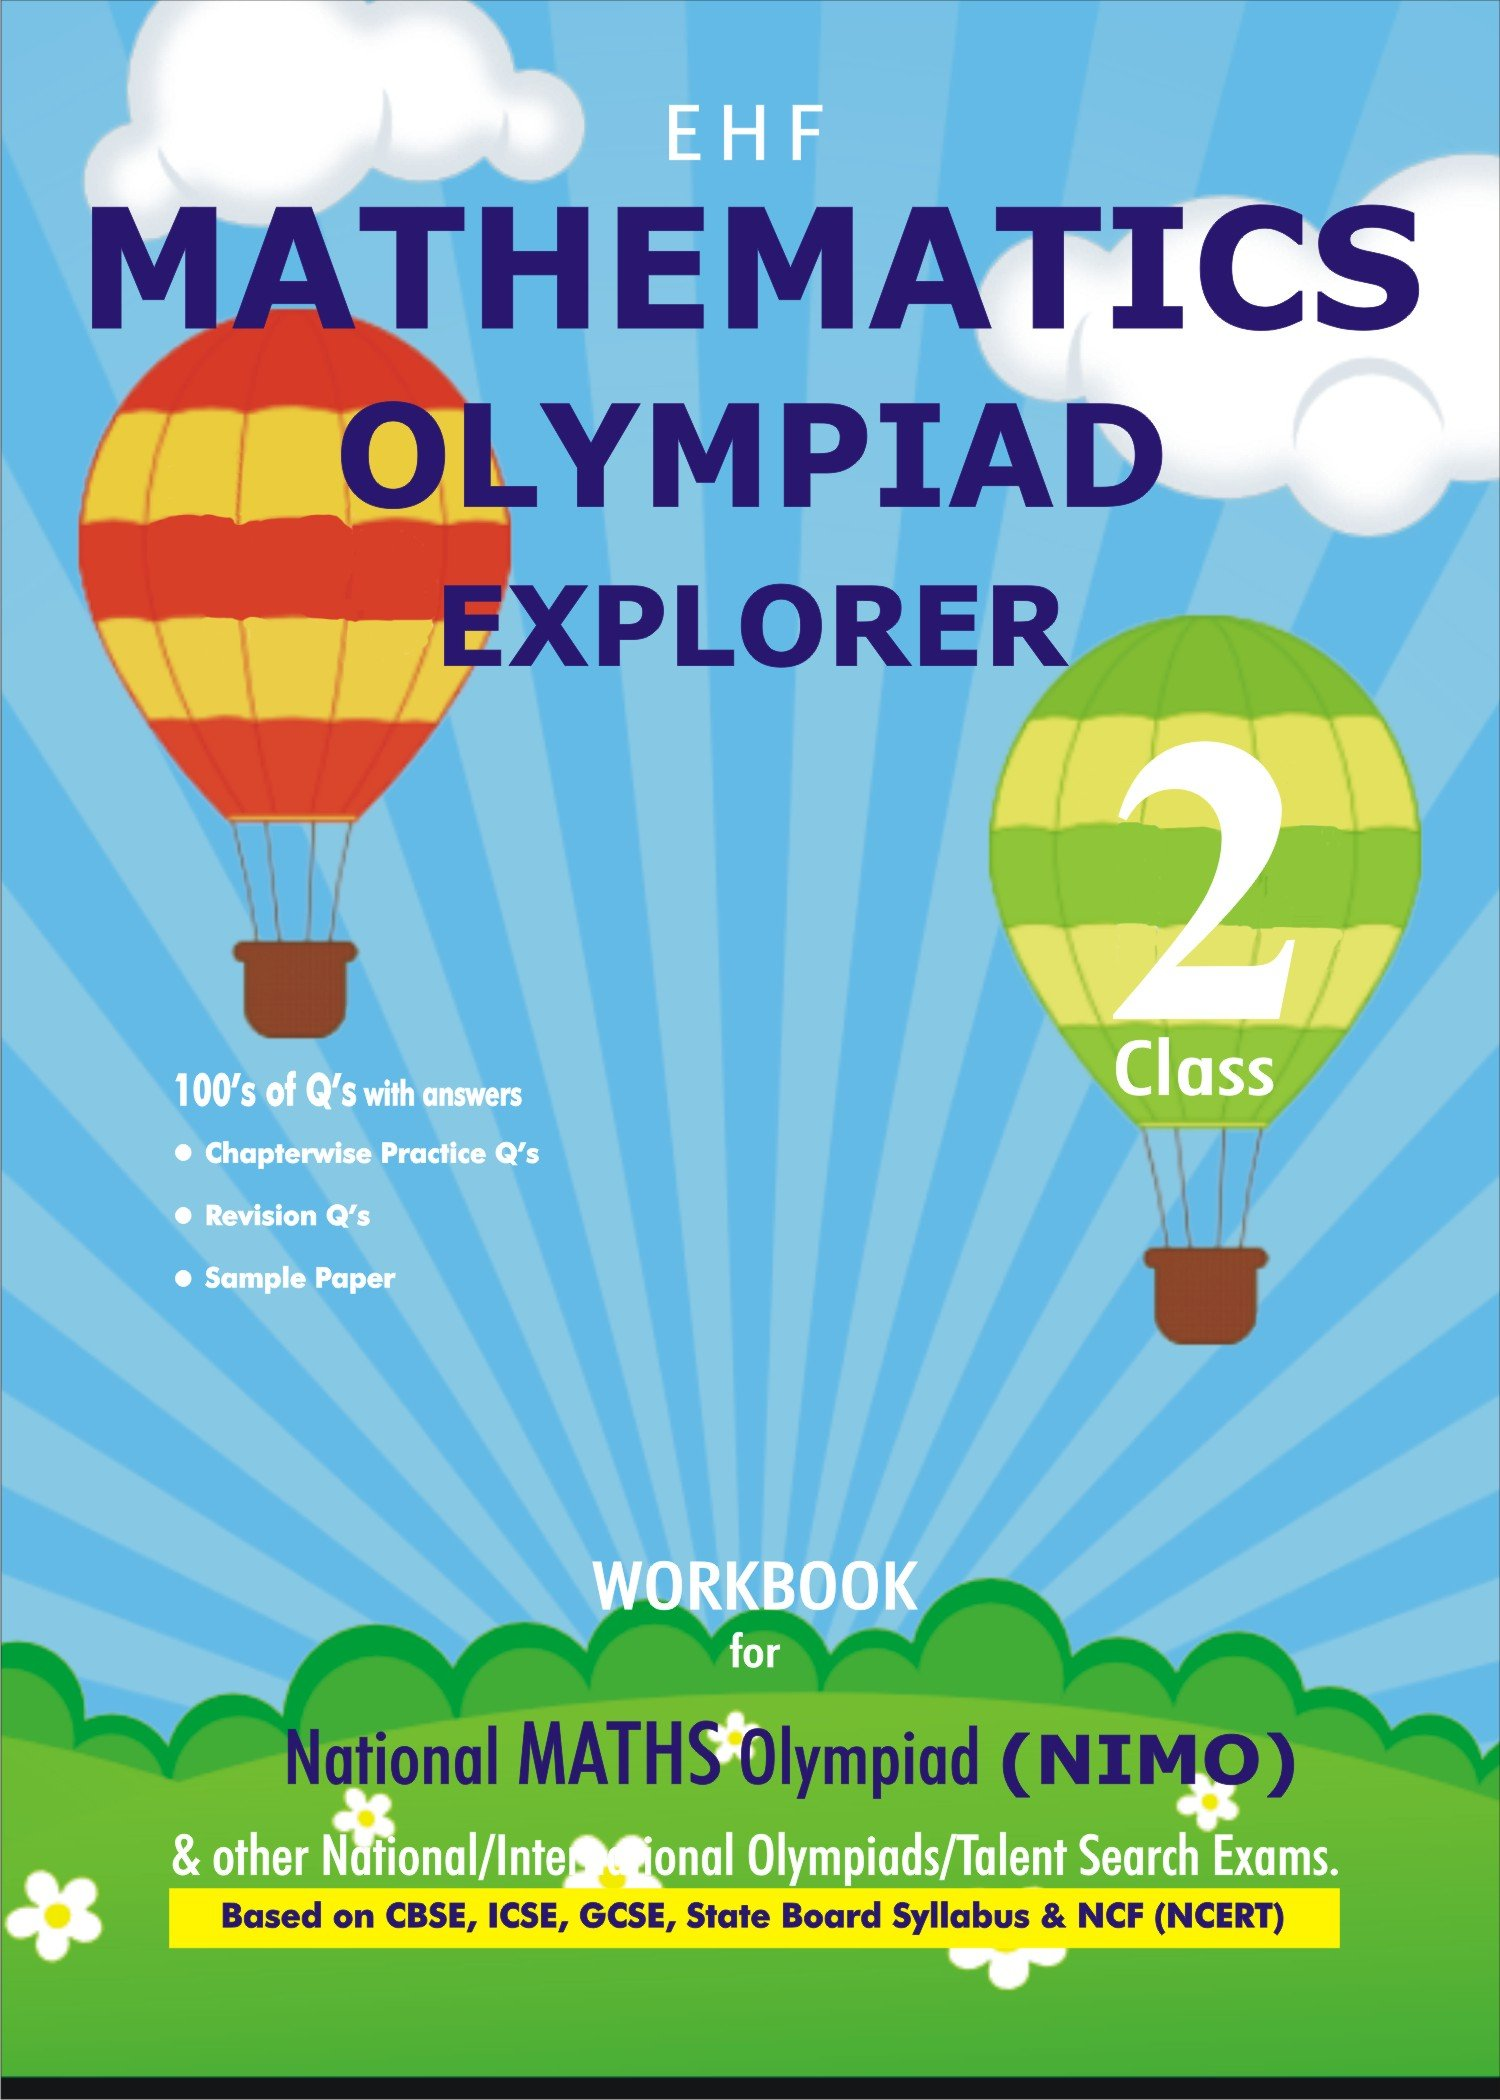 Amazon.in: Buy MATHEMATICS OLYMPIAD EXPLORER CLASS 2 Book Online at ...